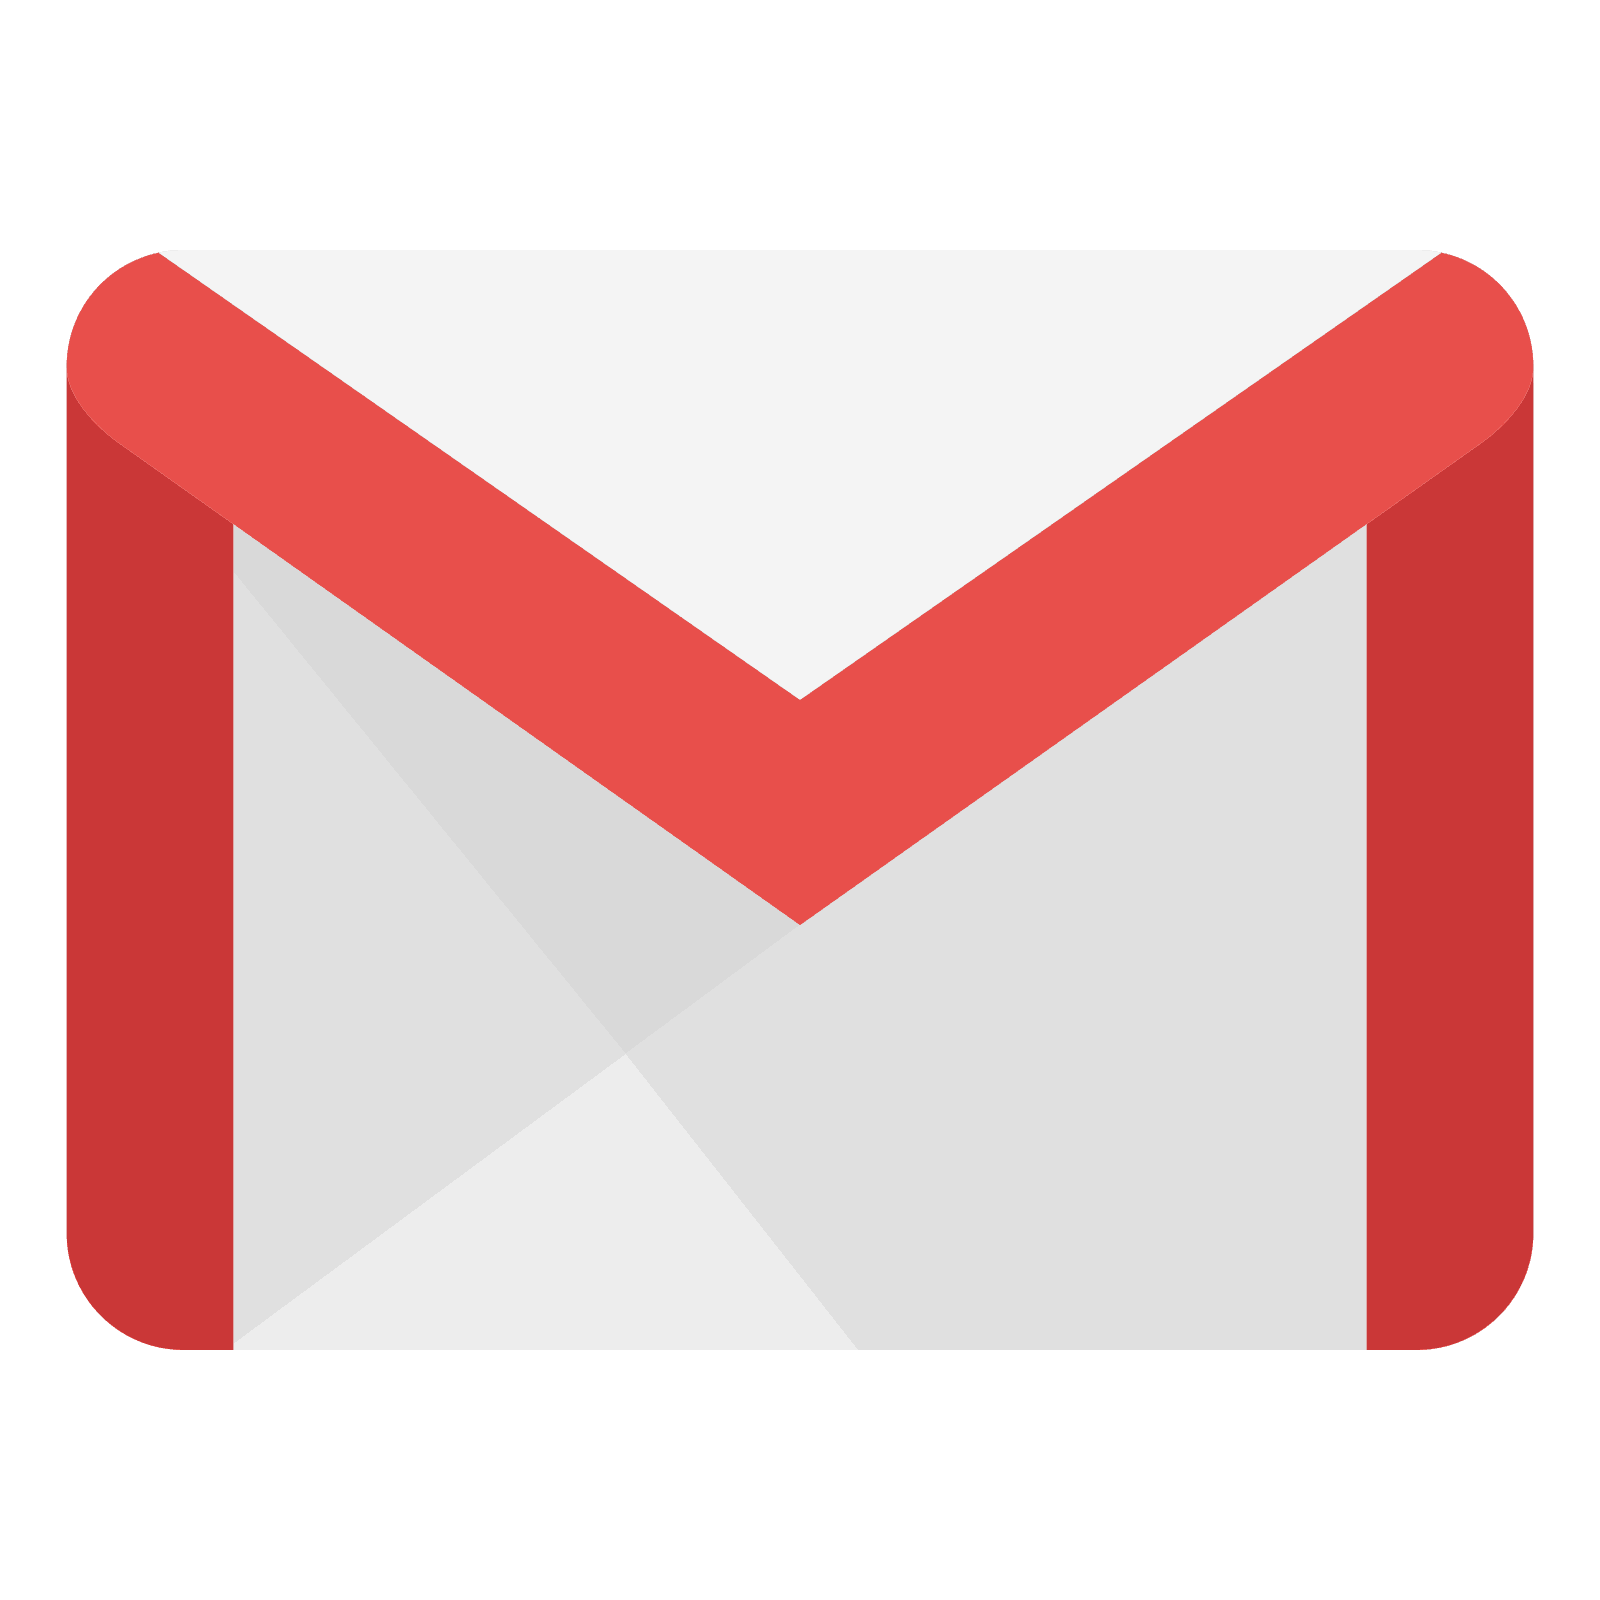 logo-gmail-png-gmail-icon-download-png-and-vector-1 ...